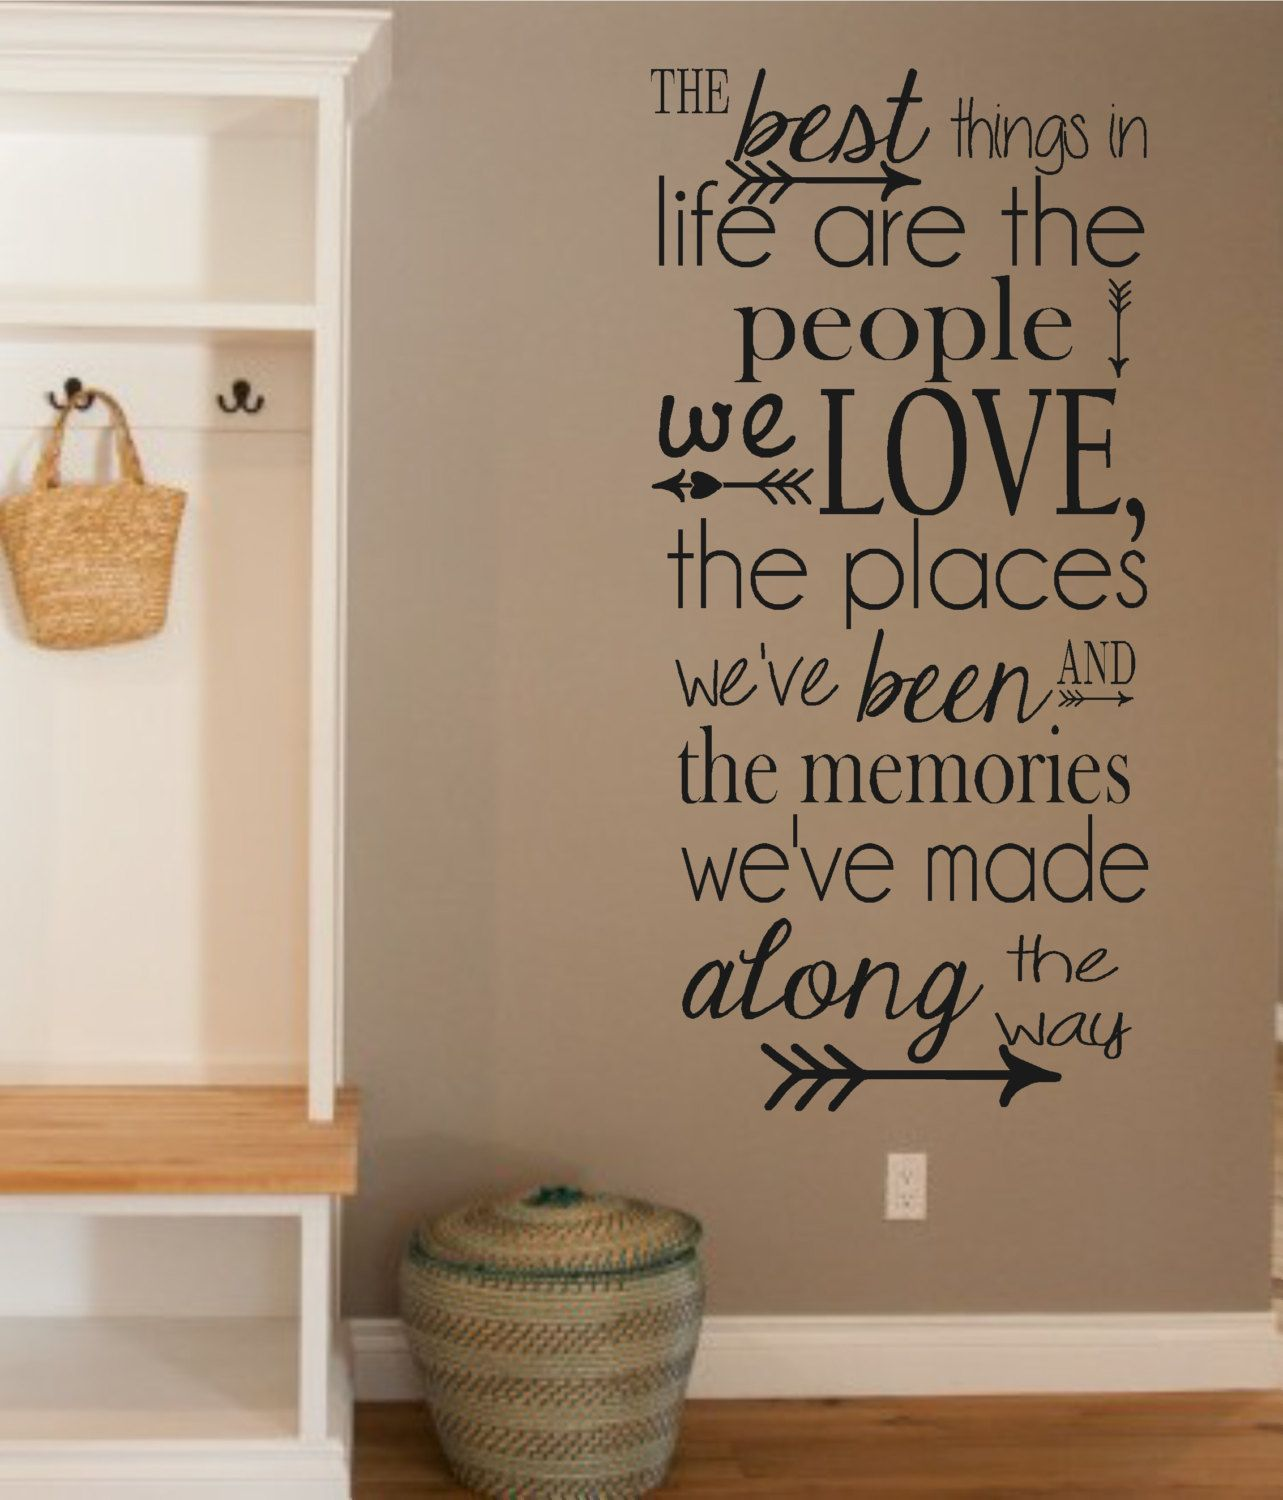 Vinyl Laundry Room Sayings Vinyl Wall Decalthe Best Things In Life People Love Memories